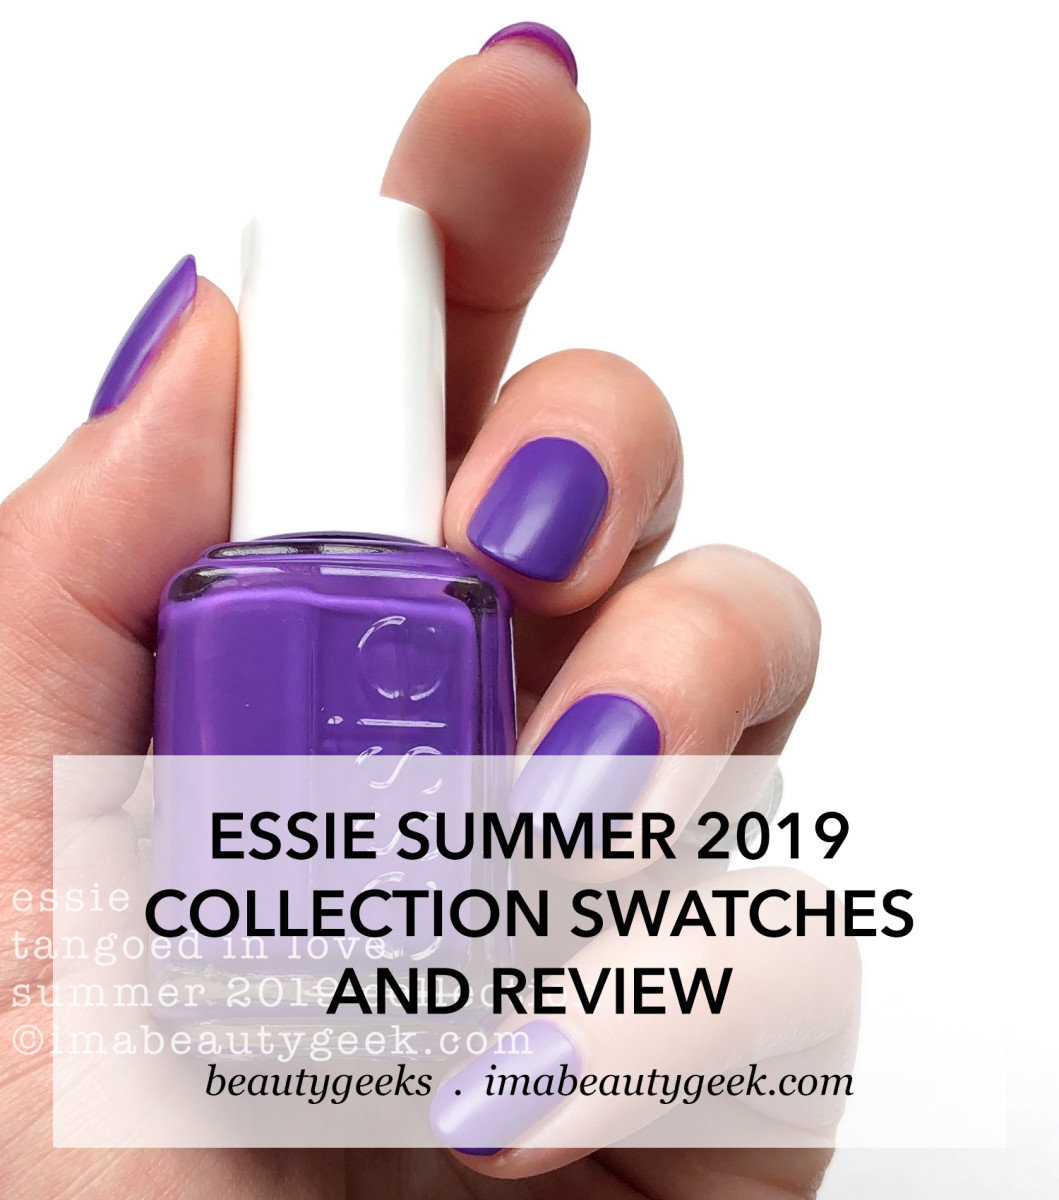 Essie Summer 2019 Neon Collection Swatches